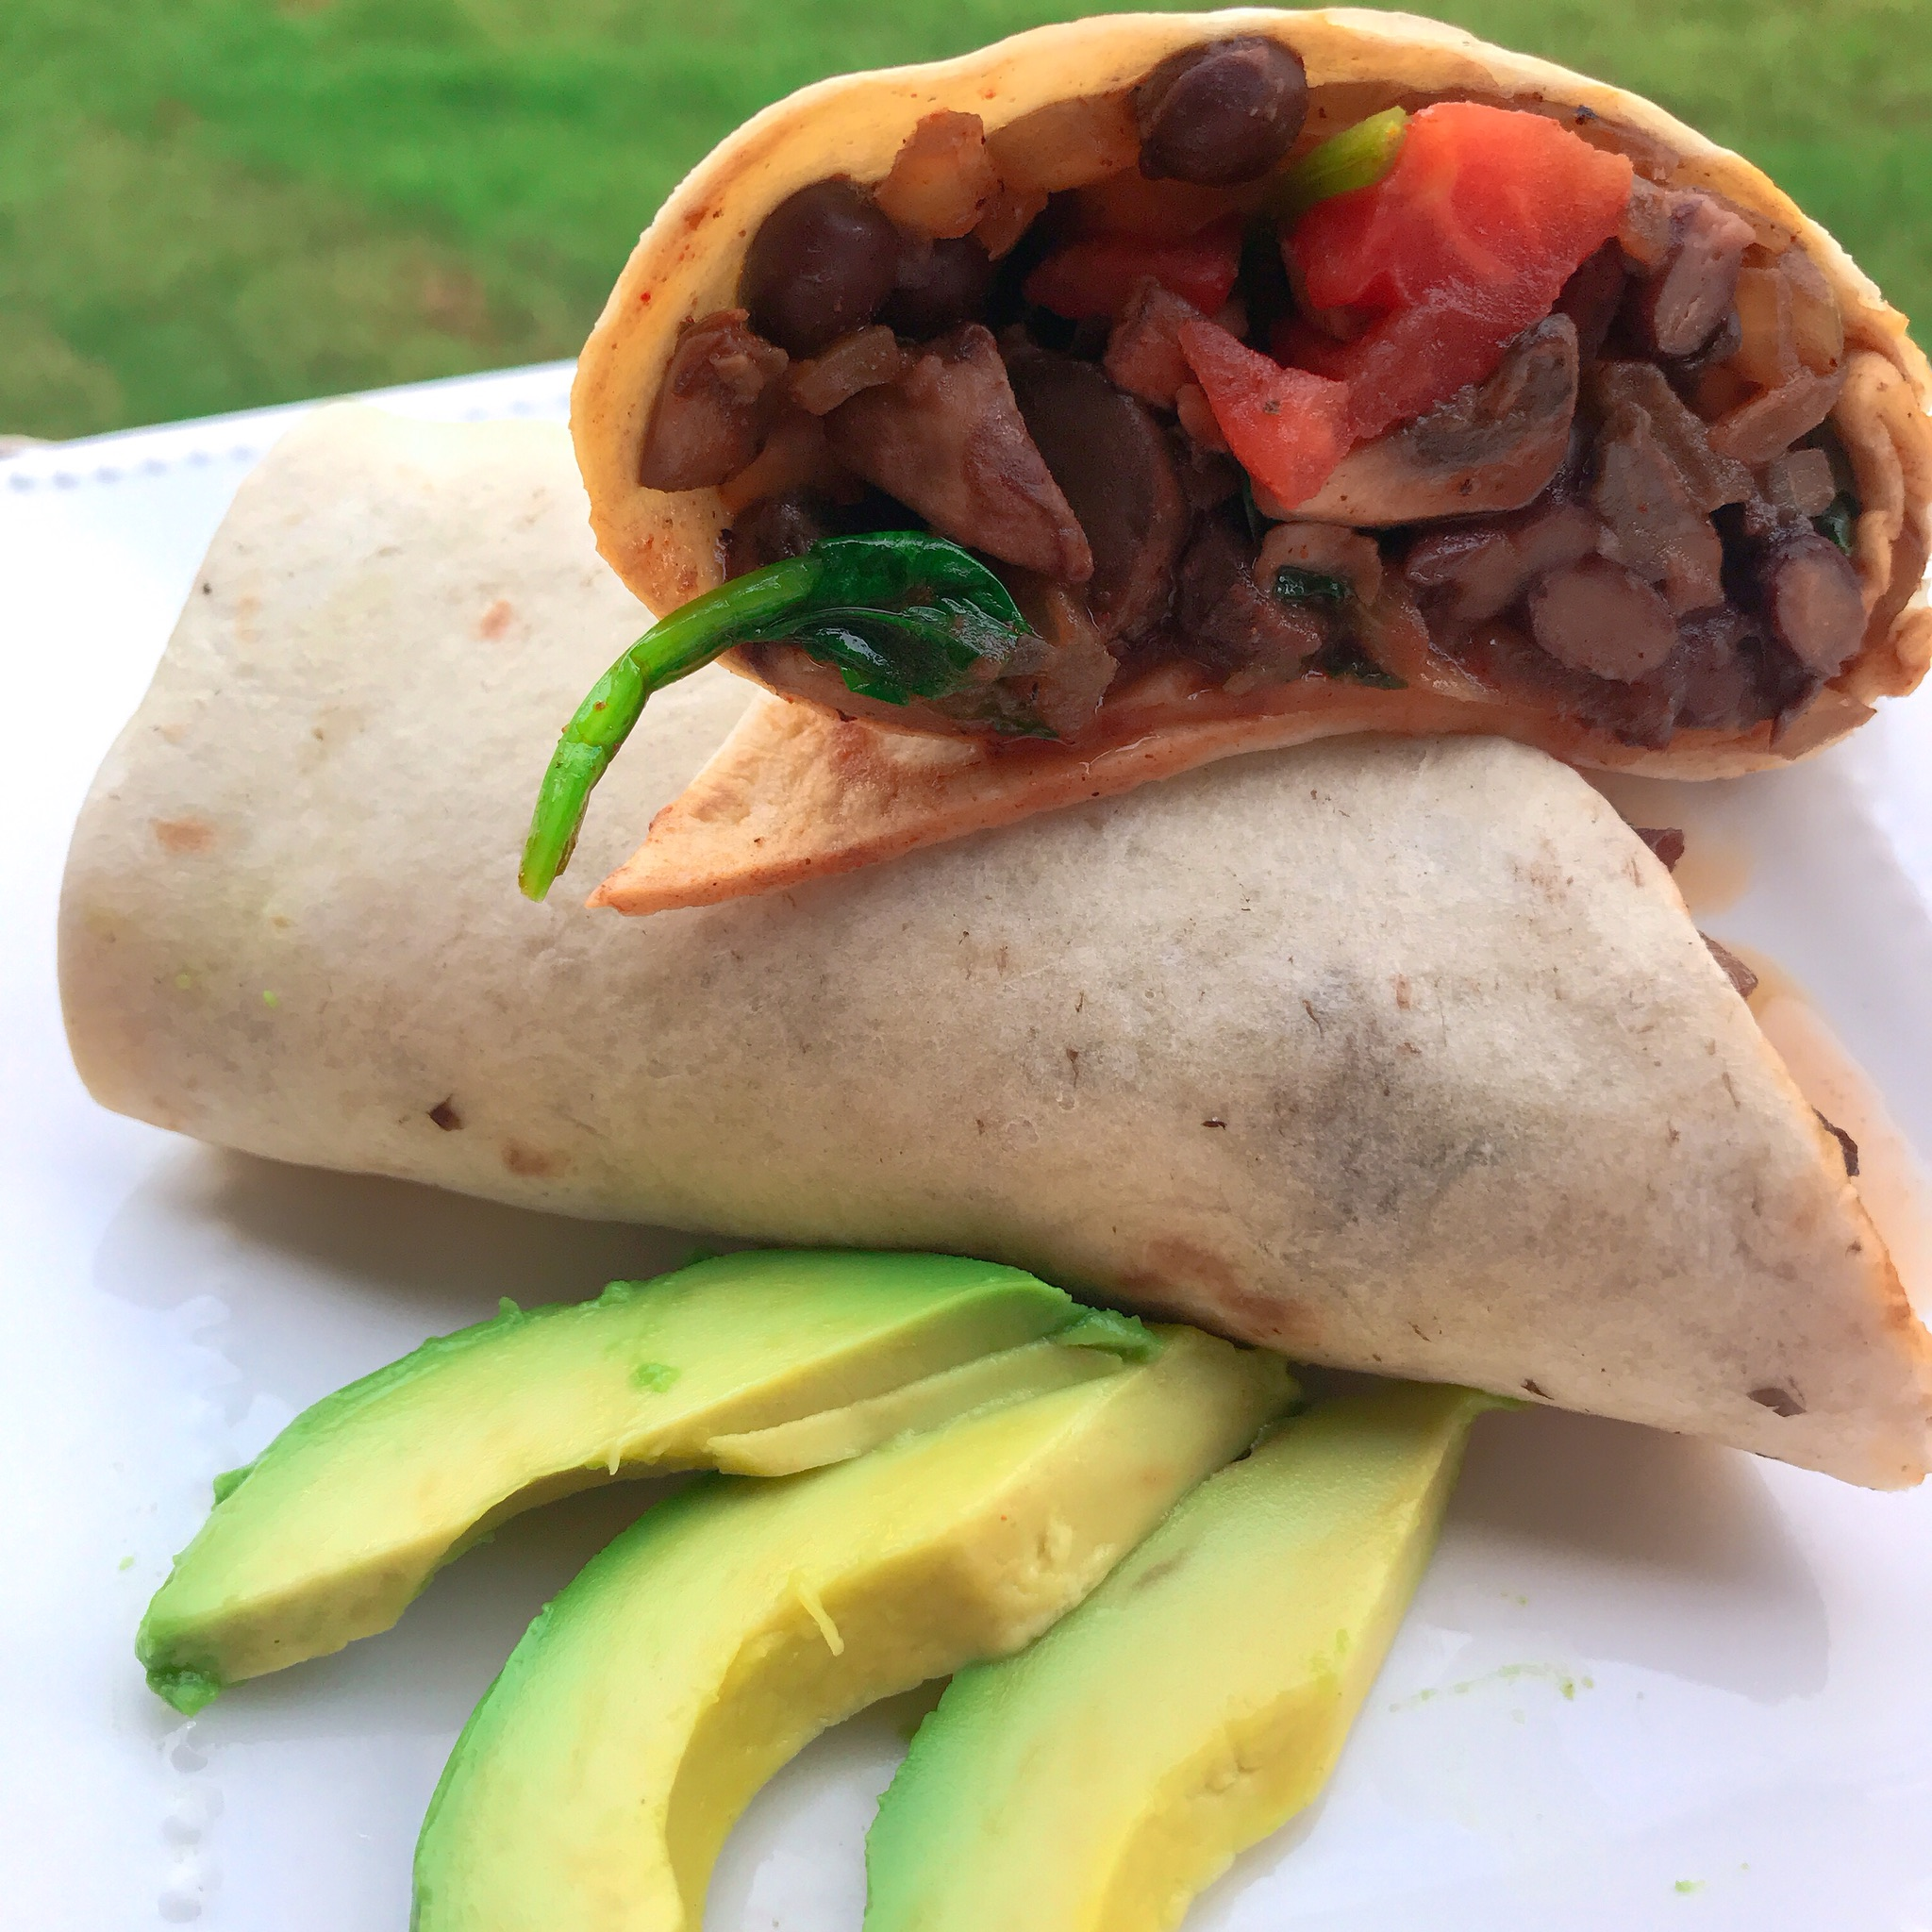 Full-of-Veggies Burritos